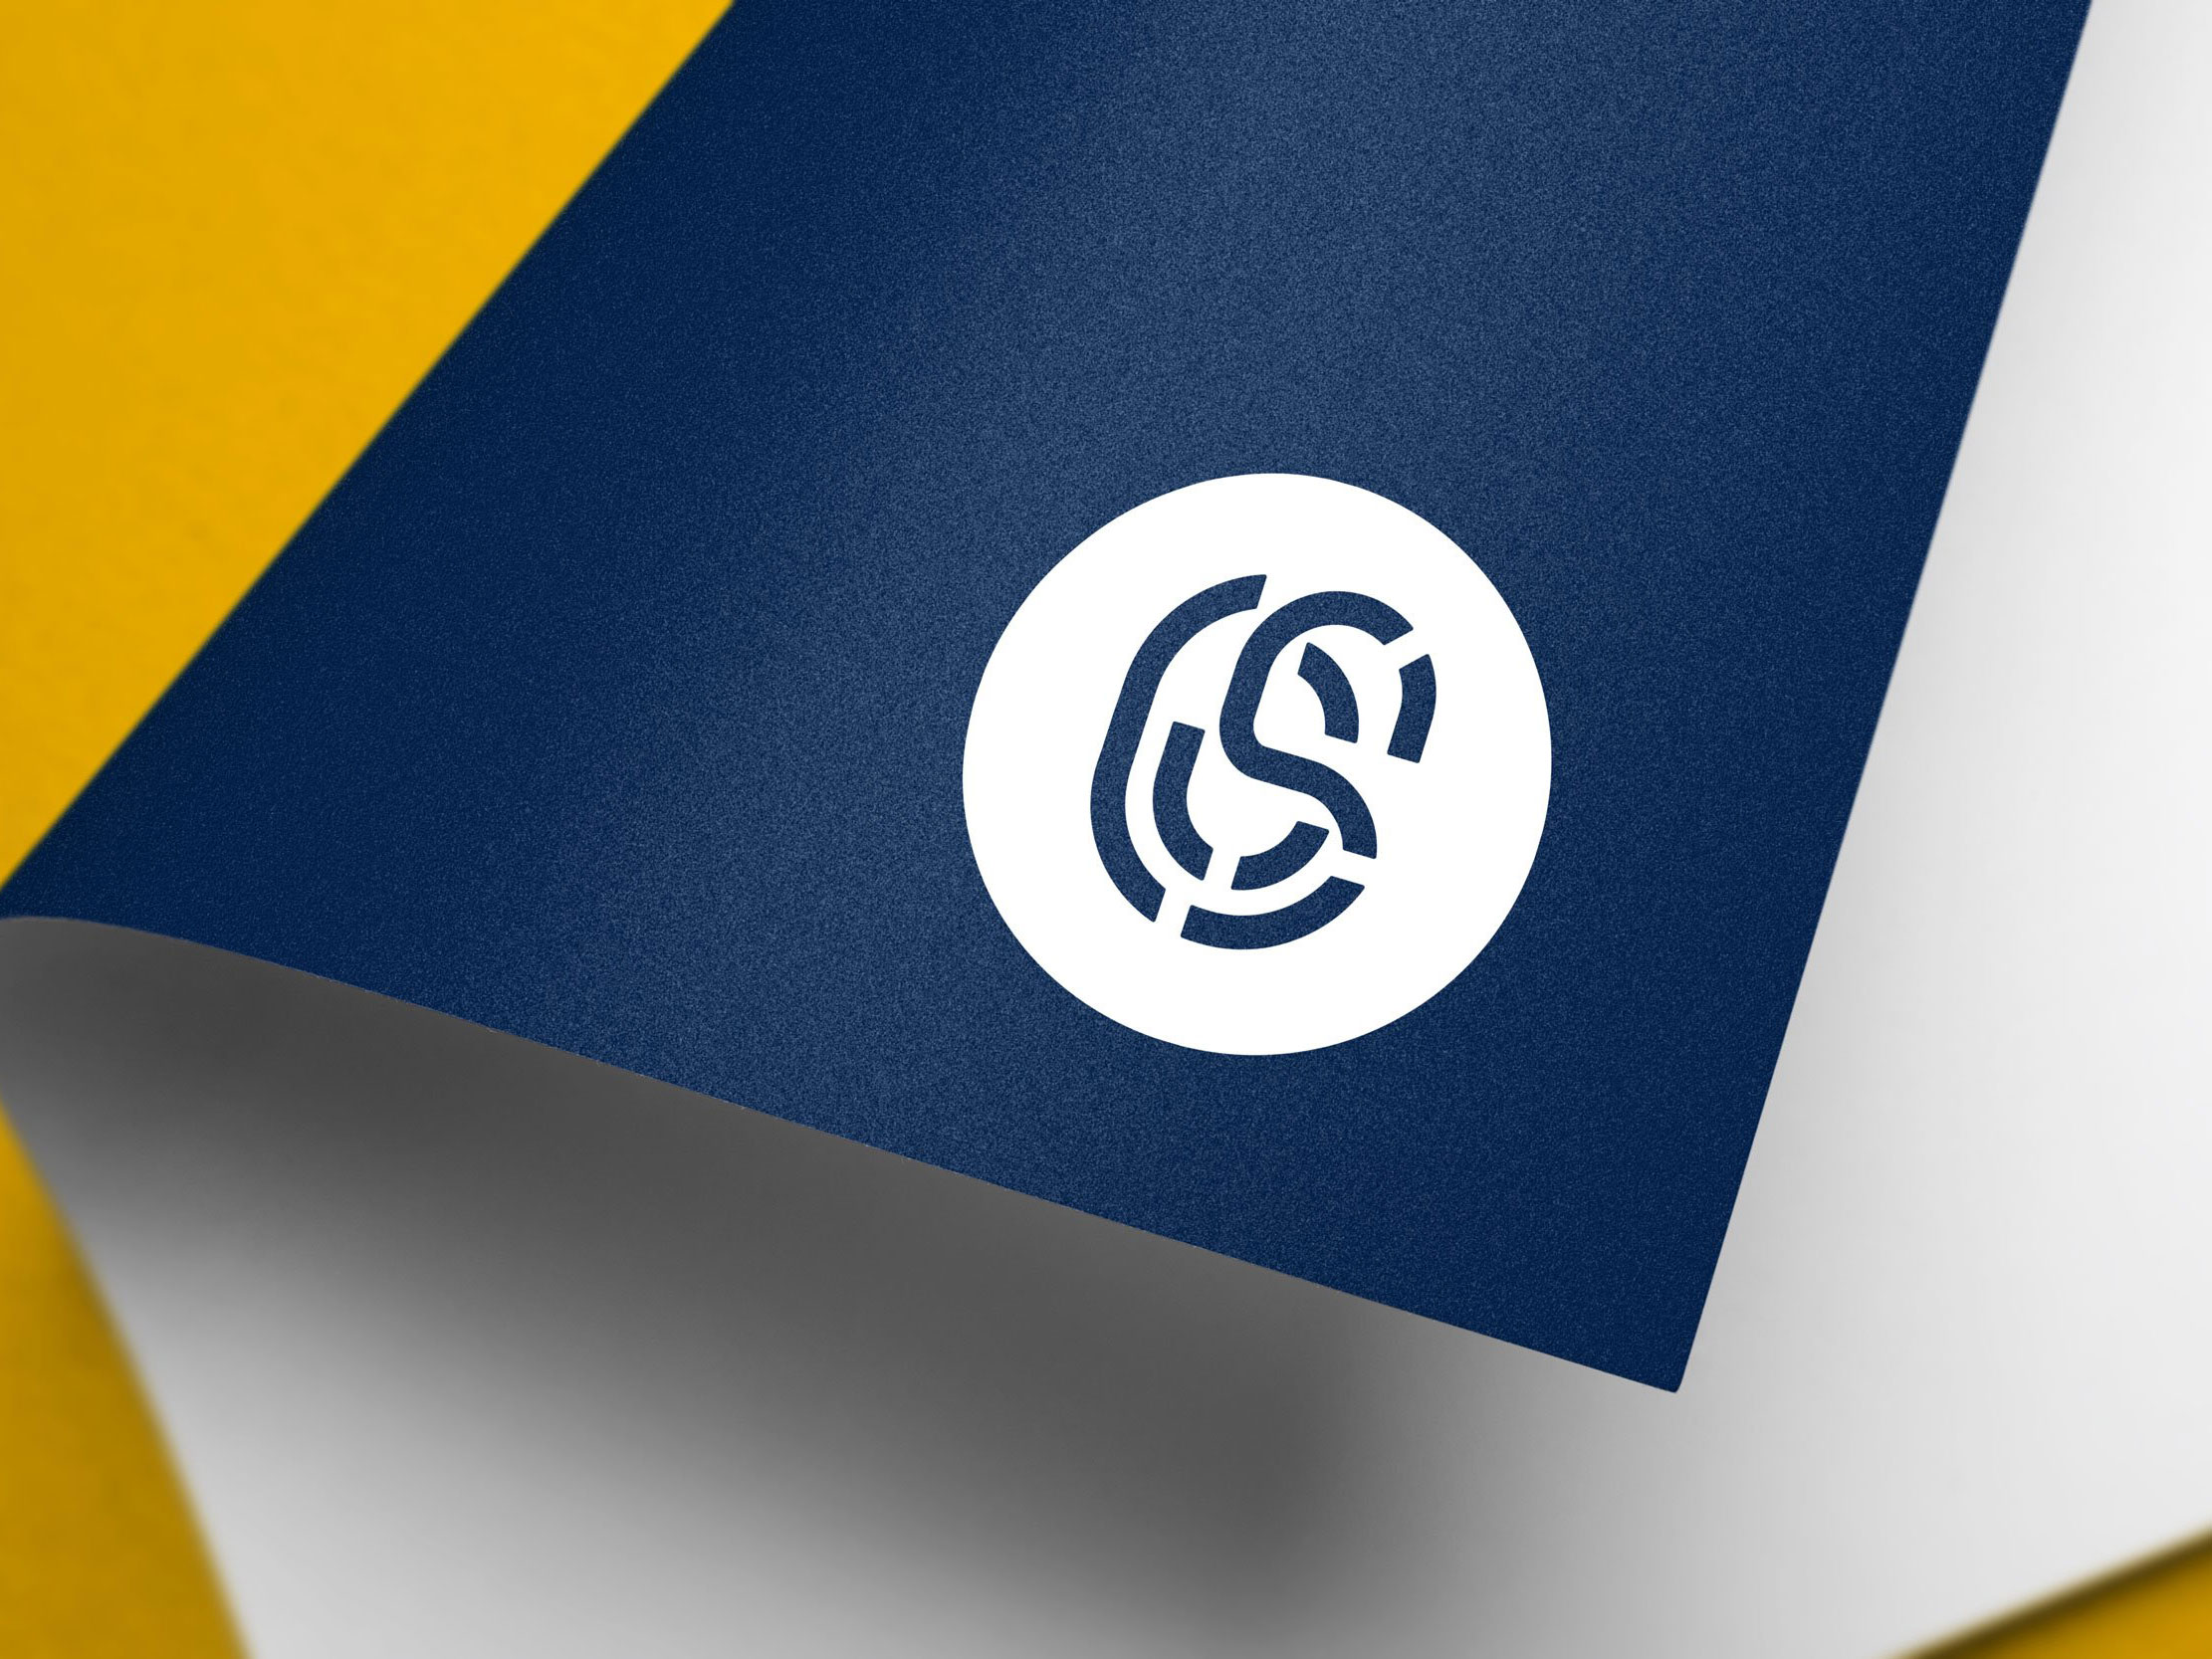 CS Logo Design